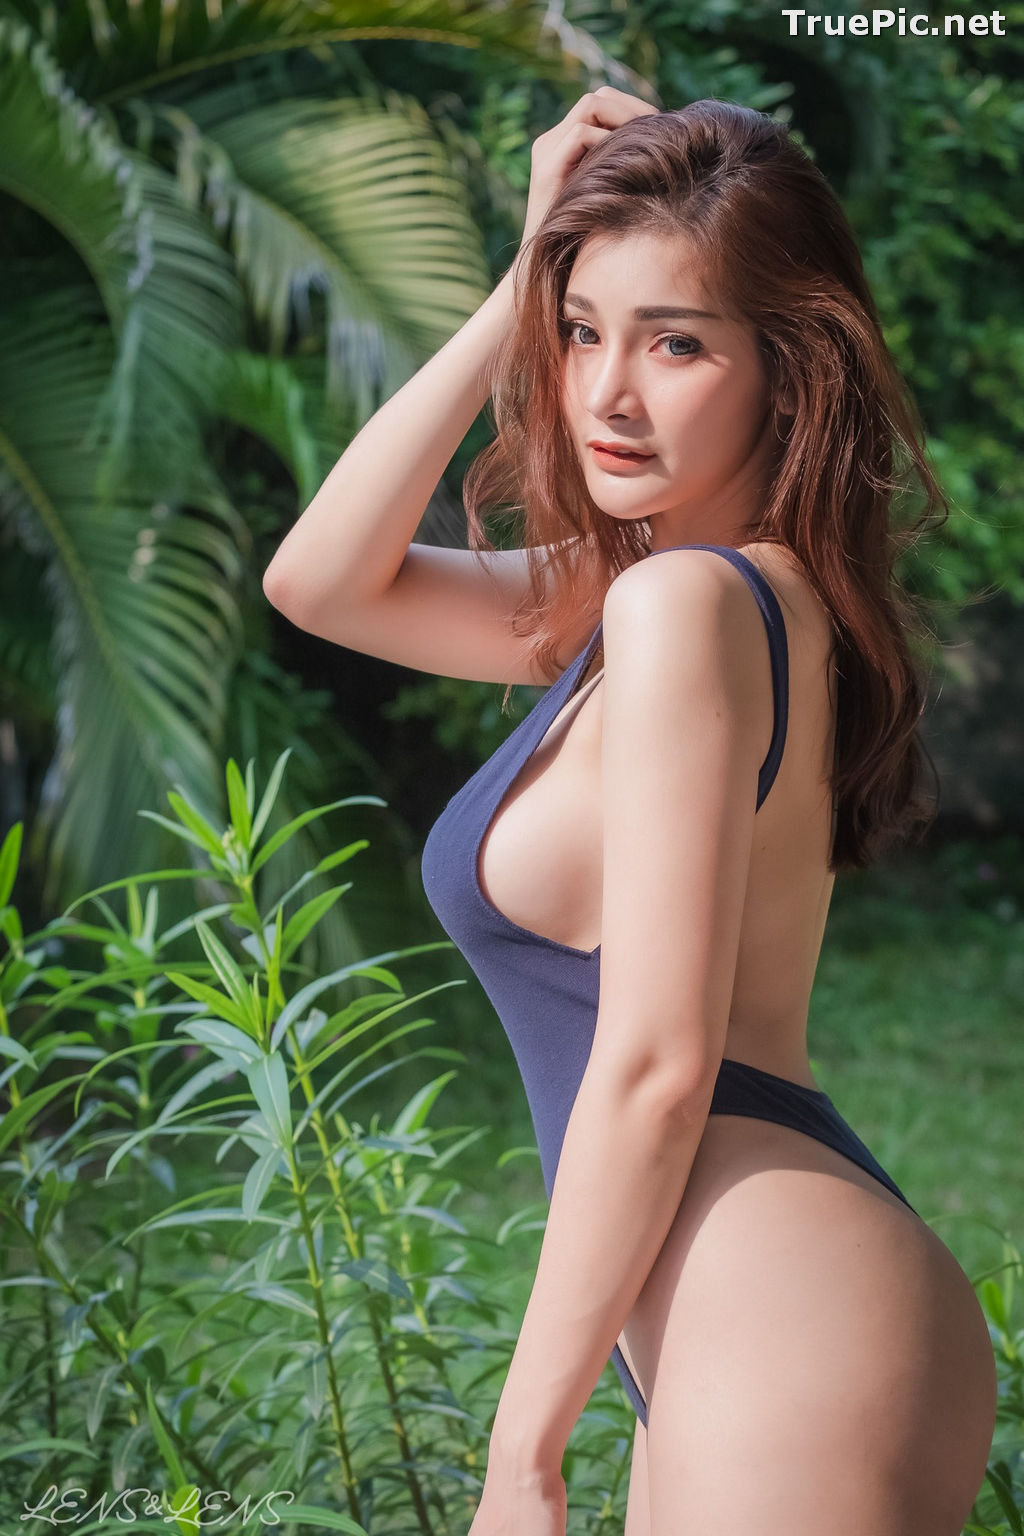 Image Thailand Model - Porntapawee Sripreserth - Concept Sexy One Piece - TruePic.net - Picture-1